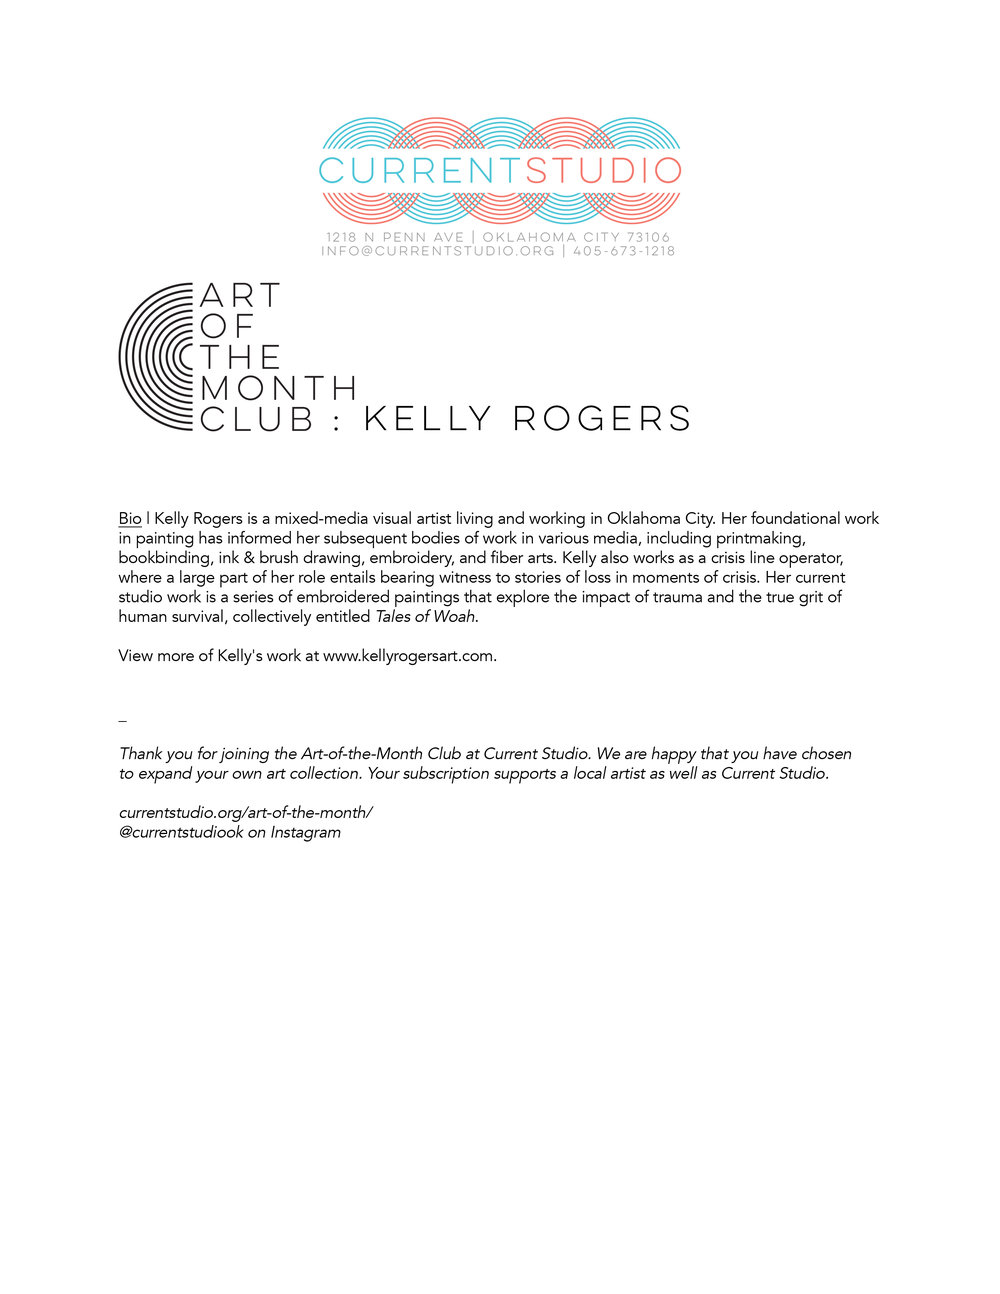 art of the month artist sheet - kelly rogers.jpg